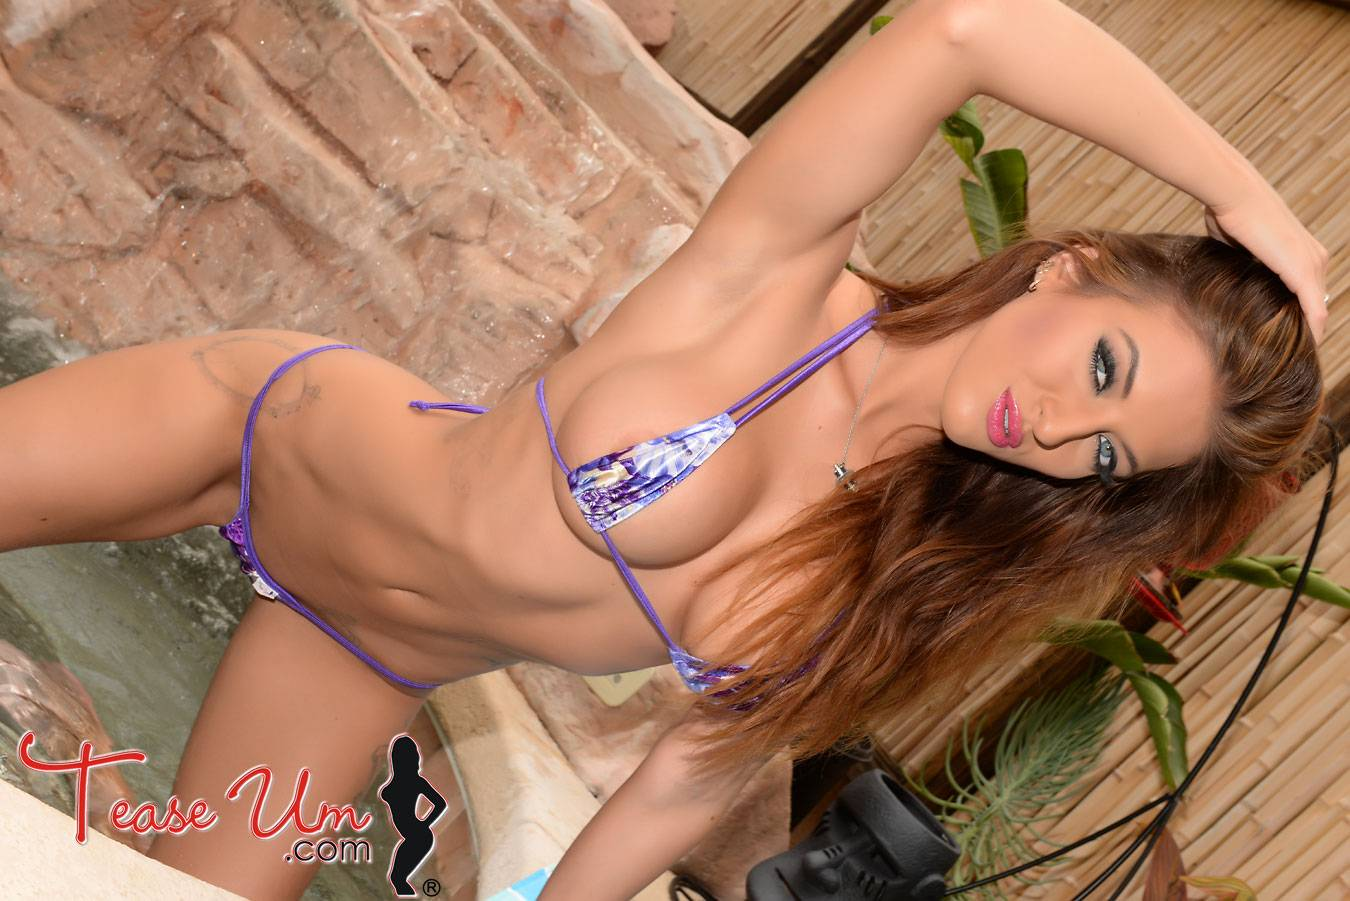 teaseum model Crystal Knight purple bikini poolside thumb 2